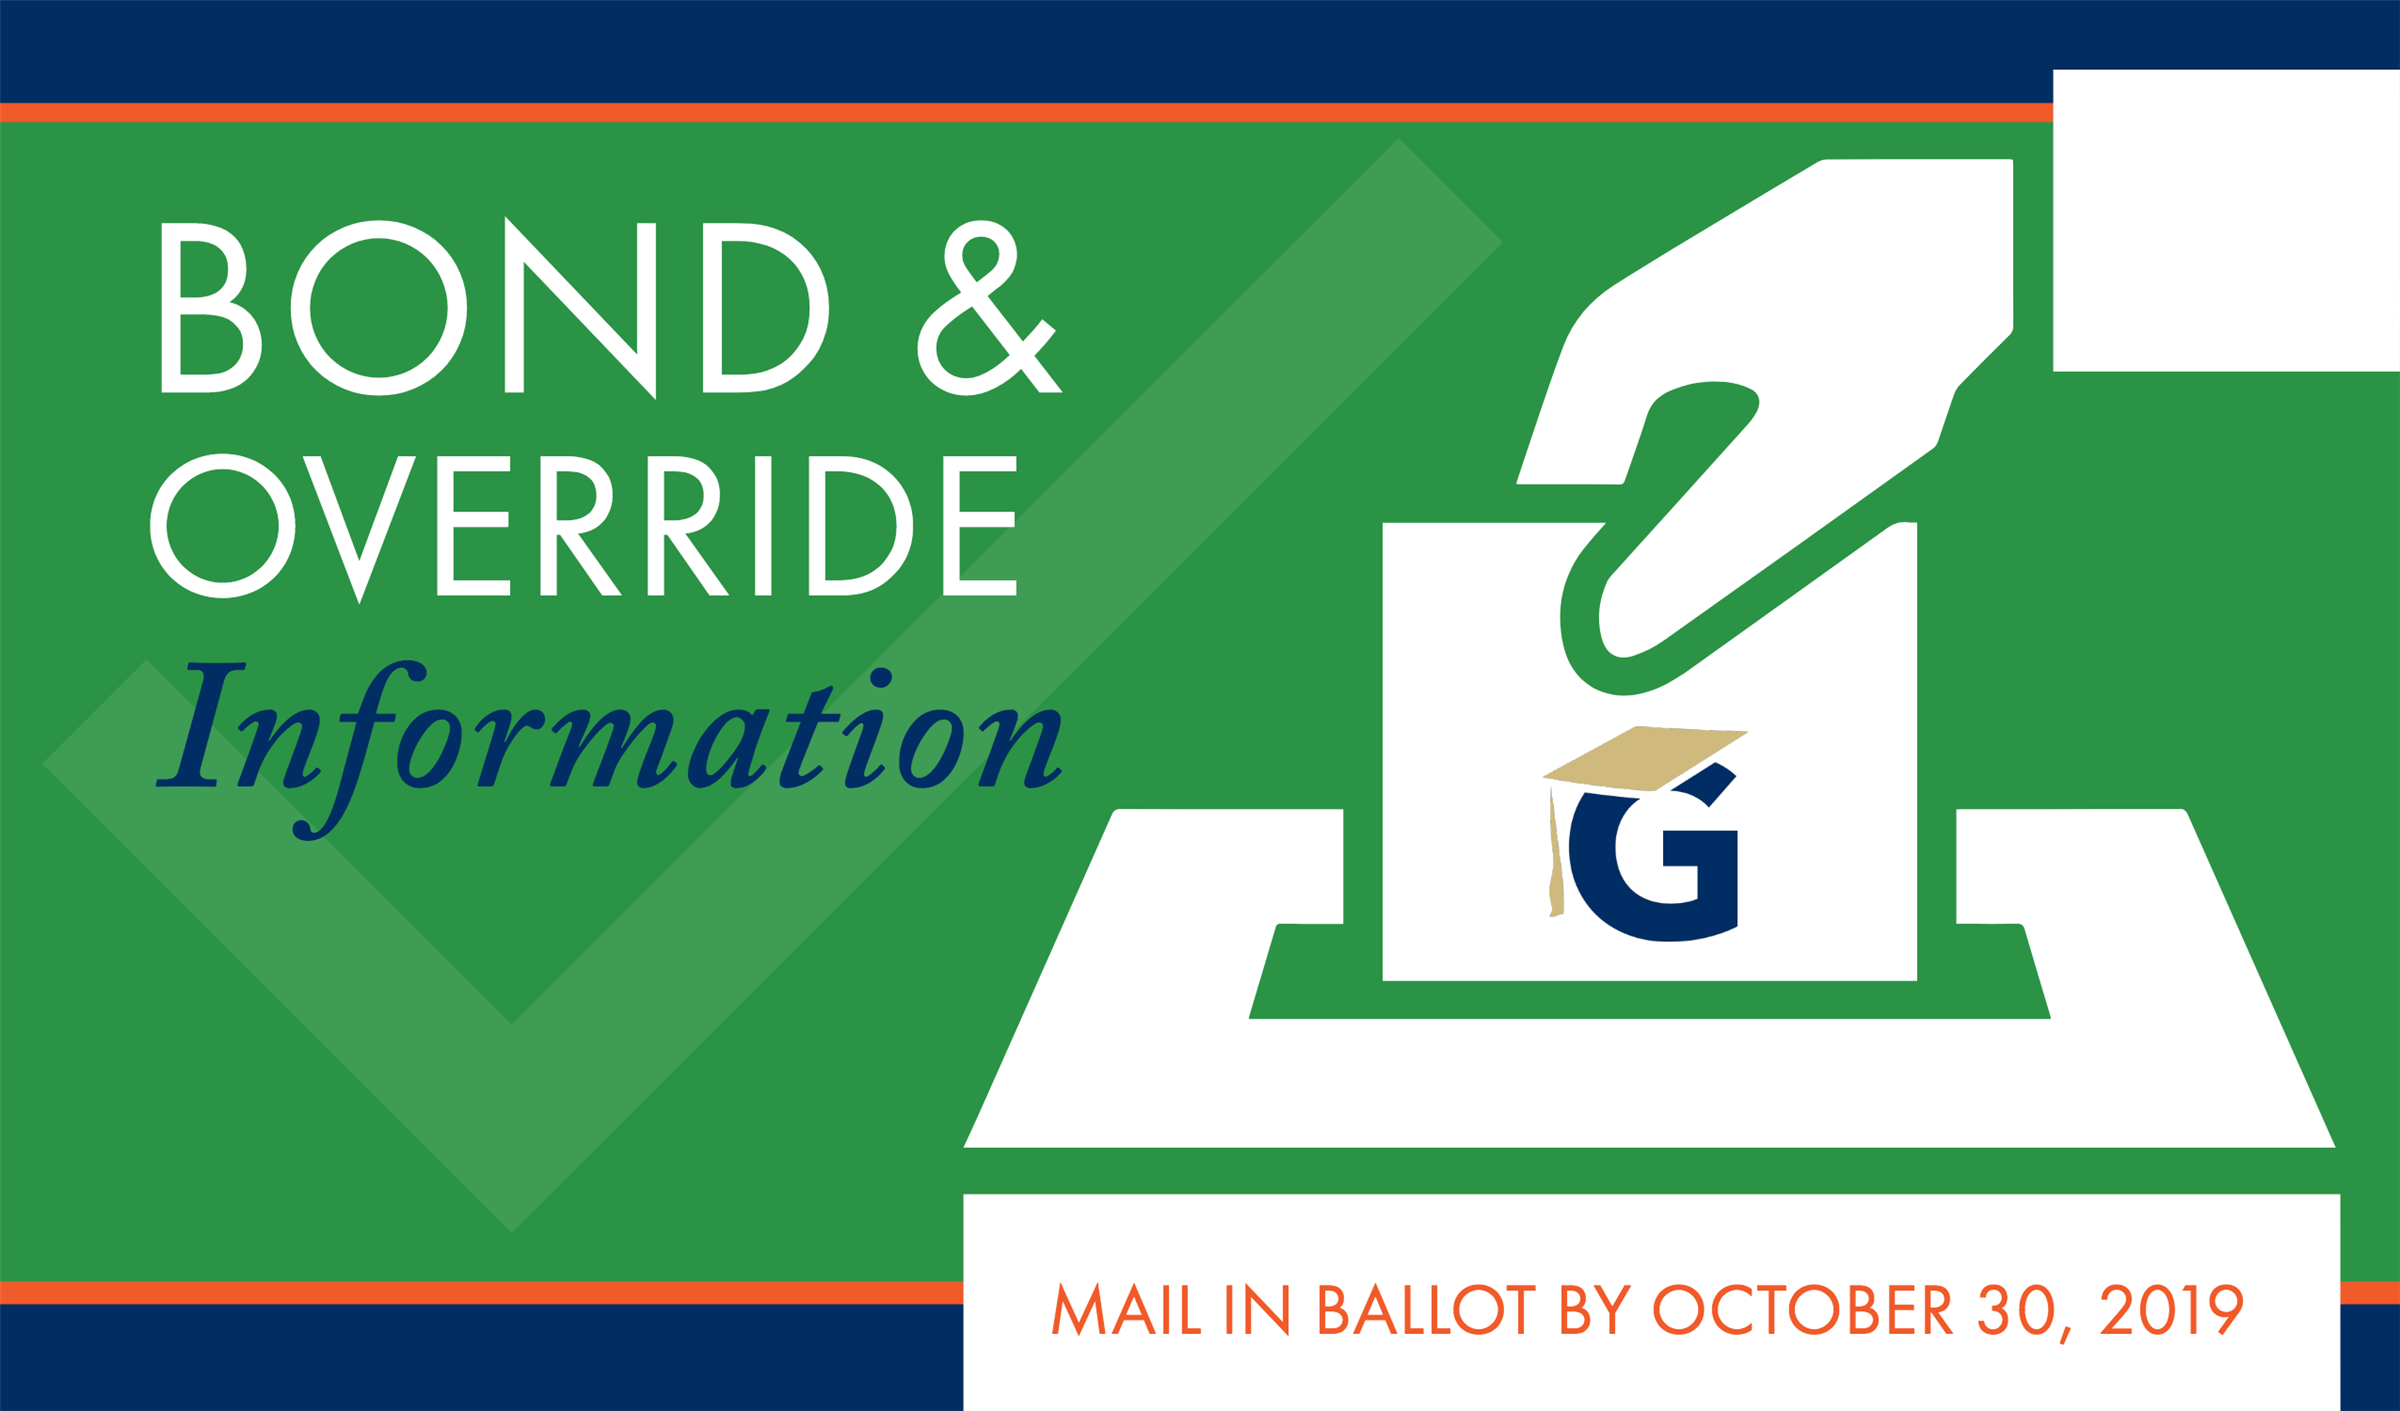 Bond & Override Information Mail in Ballot by October 30